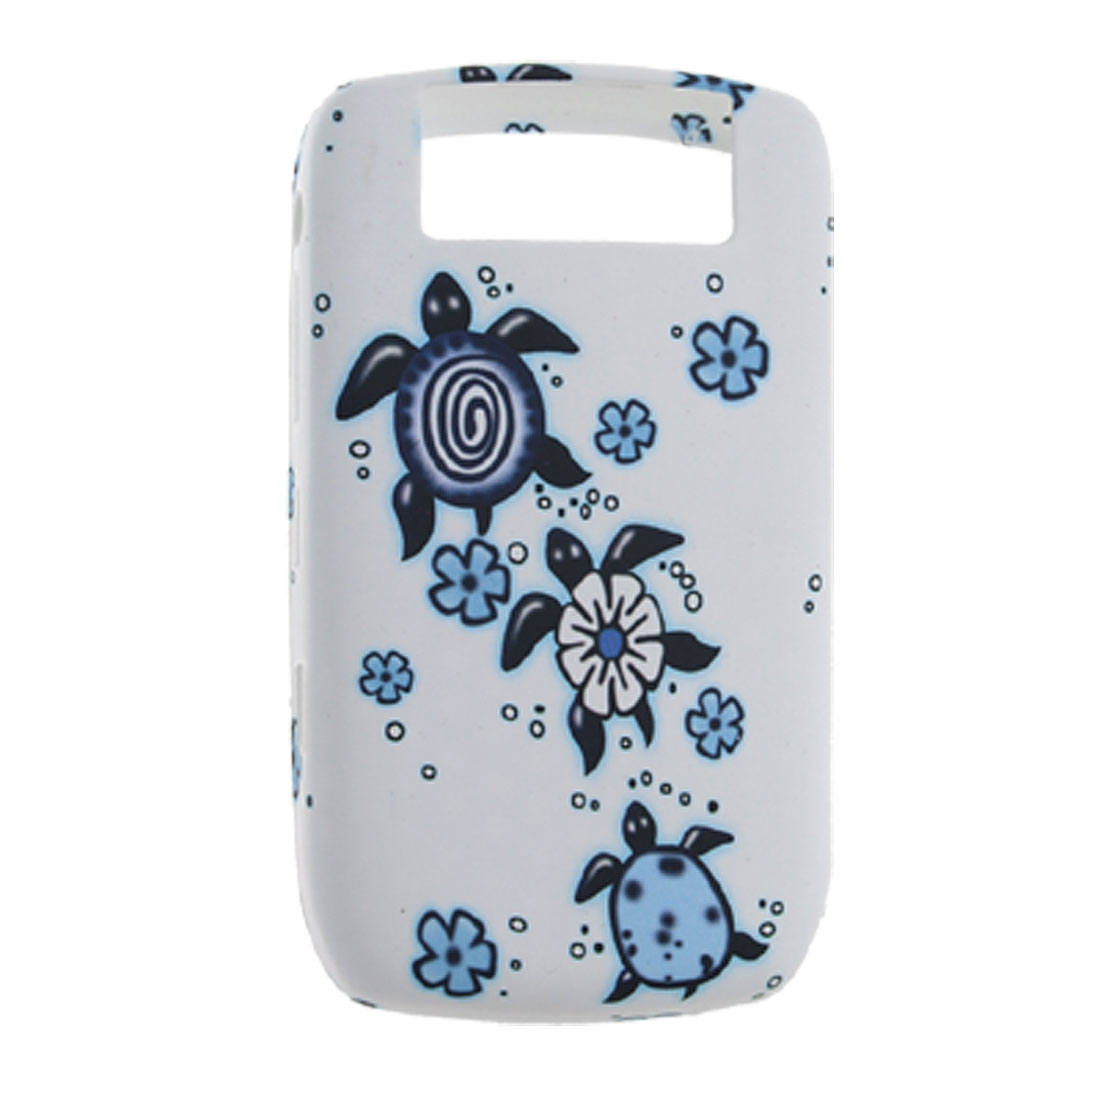 Tortoise Style White Soft Plastic Back Cover for BlackBerry 8900